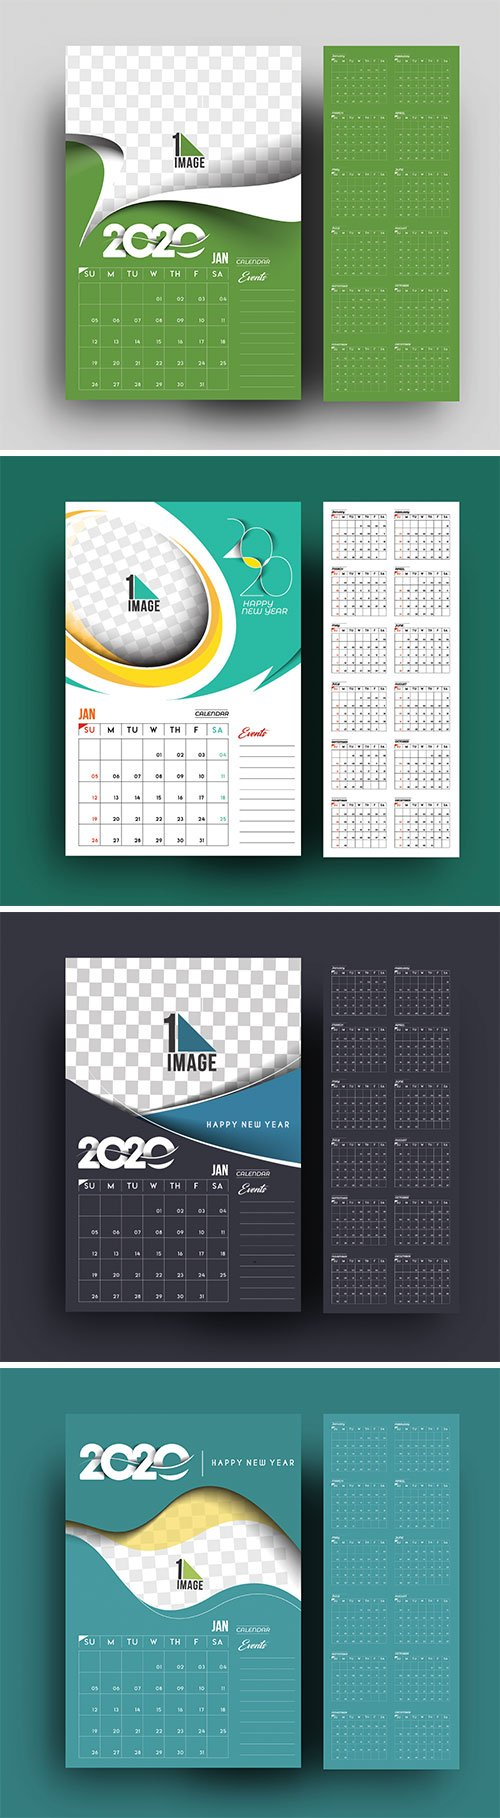 Happy new year 2020 Calendar, holiday design elements for holiday cards